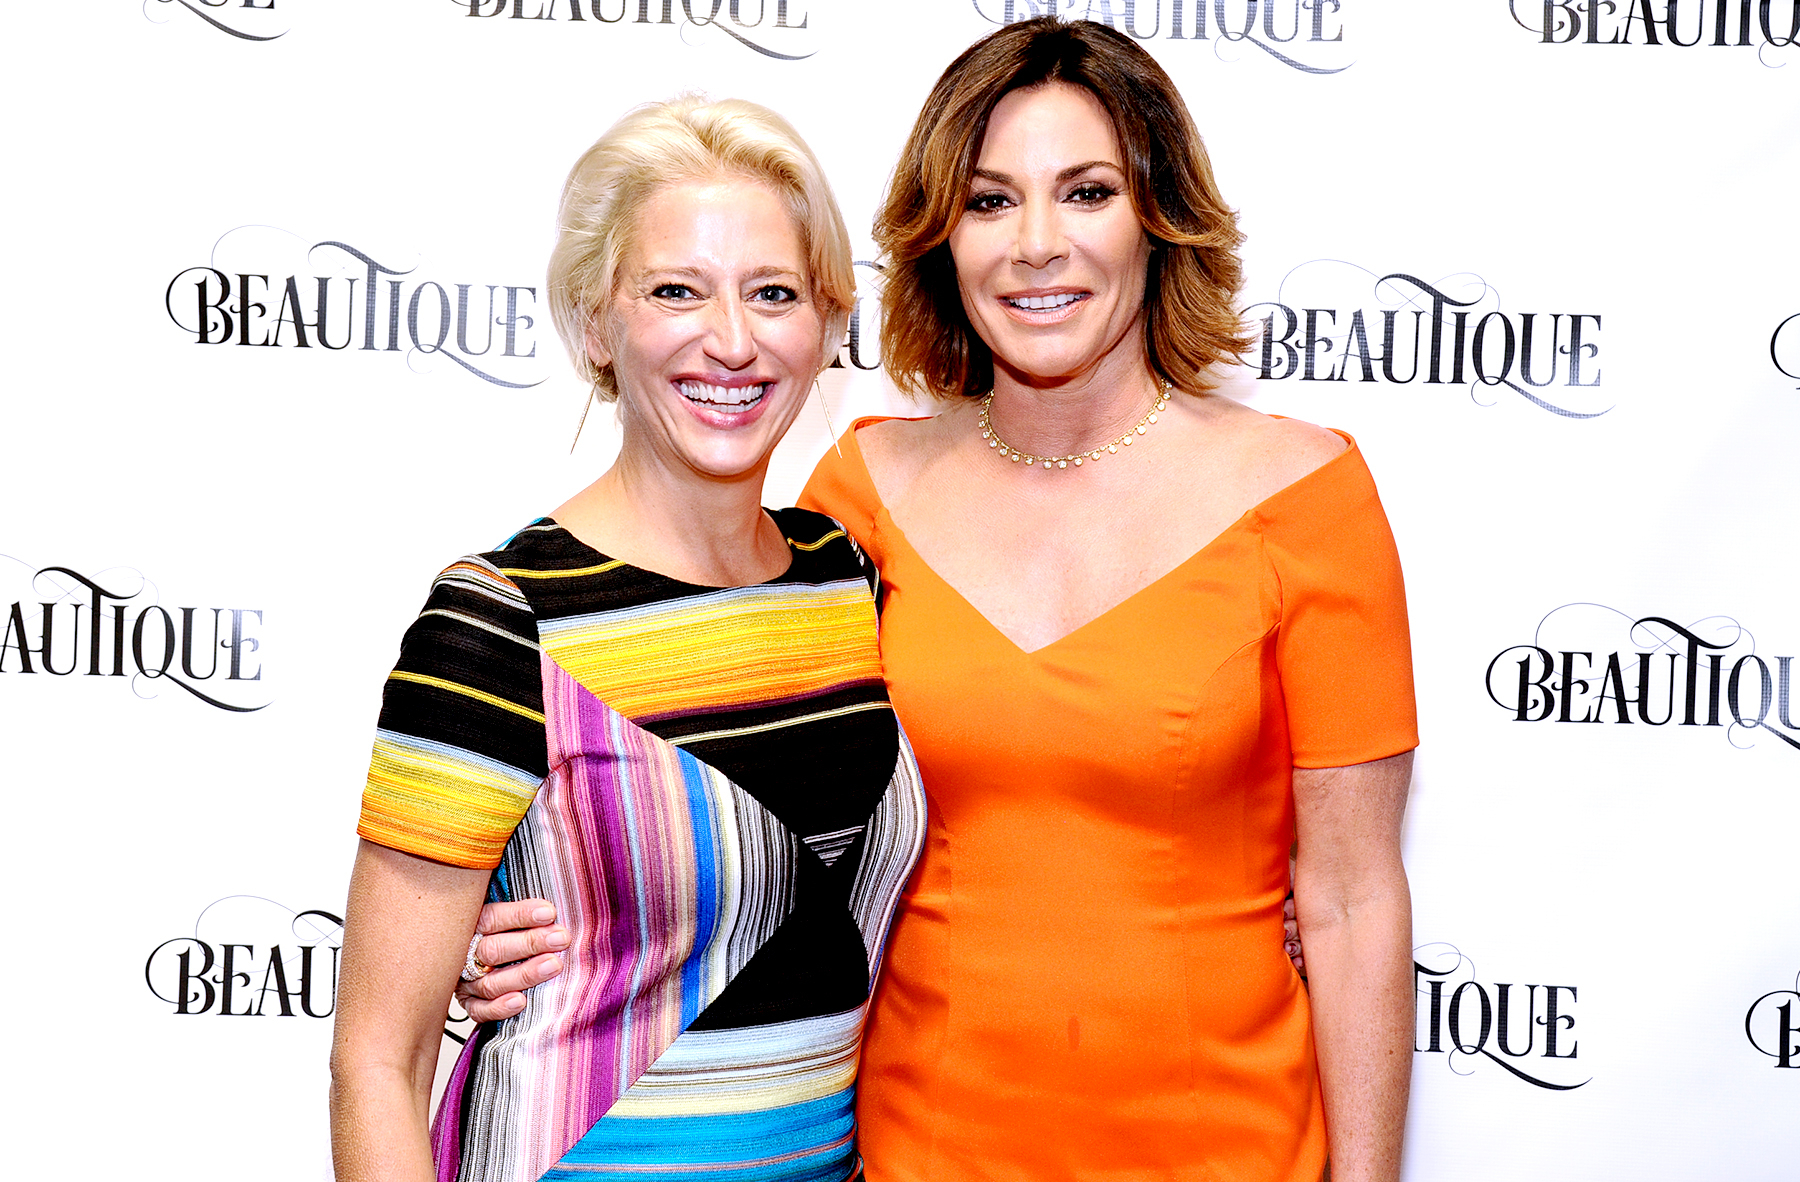 Dorinda Medley and Luann de Lesseps attend a 'Luxury Living' magazine relaunch party at Beautique in New York City on June 23, 2016.